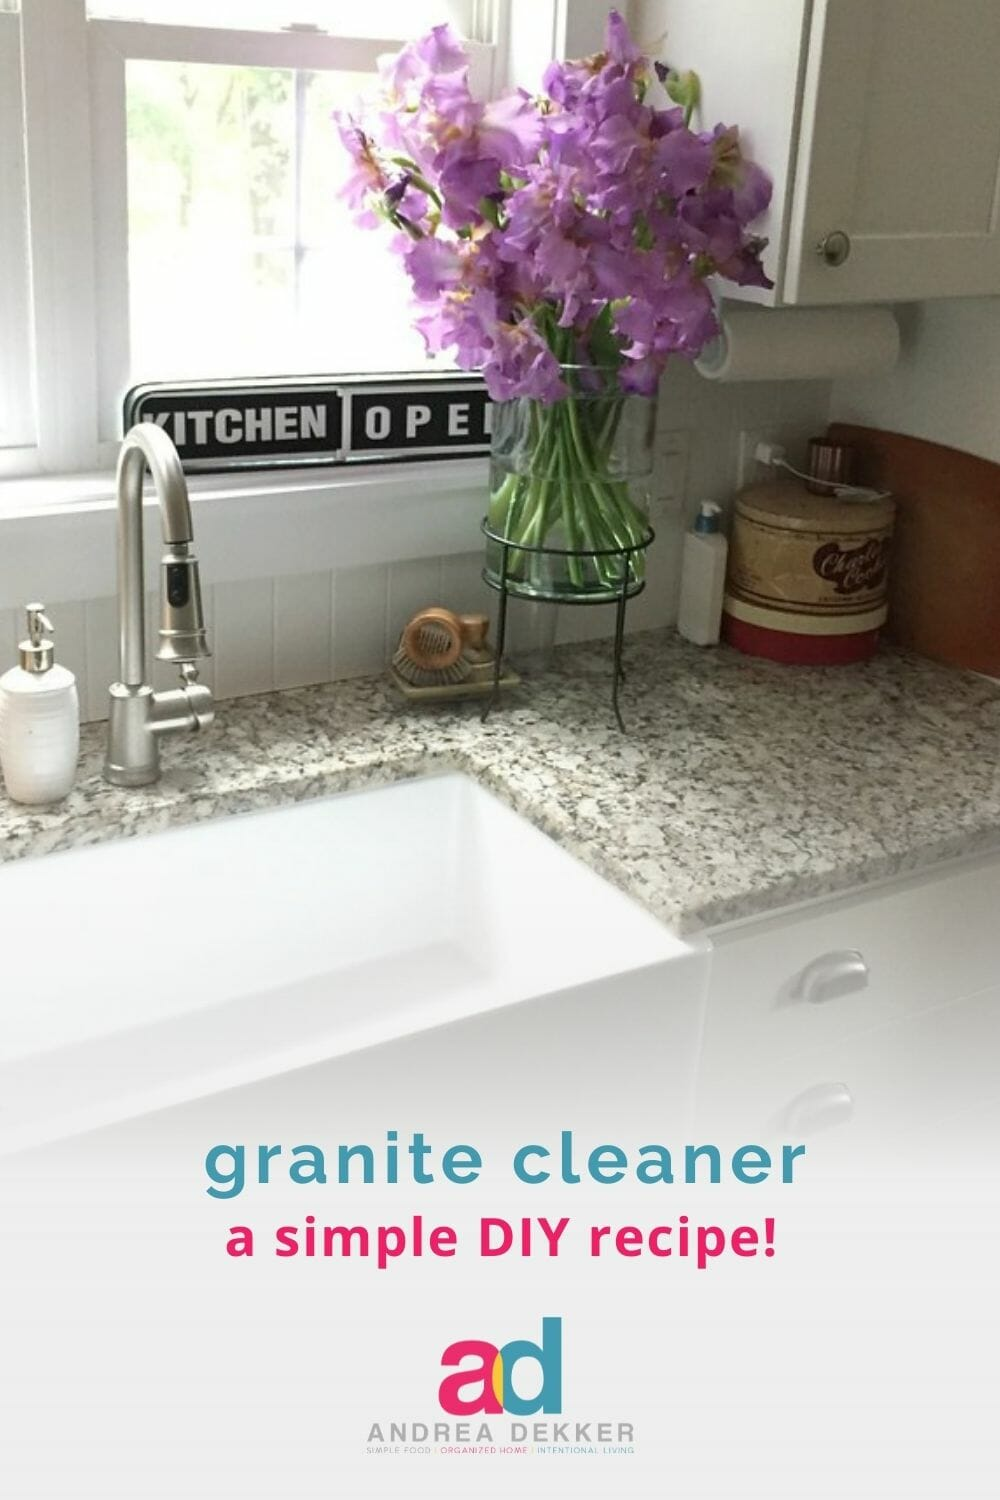 Give your granite surfaces a streak-free shine with this super simple, DIY cleaner that's safe for granite, extremely effective, and costs pennies to make! via @andreadekker